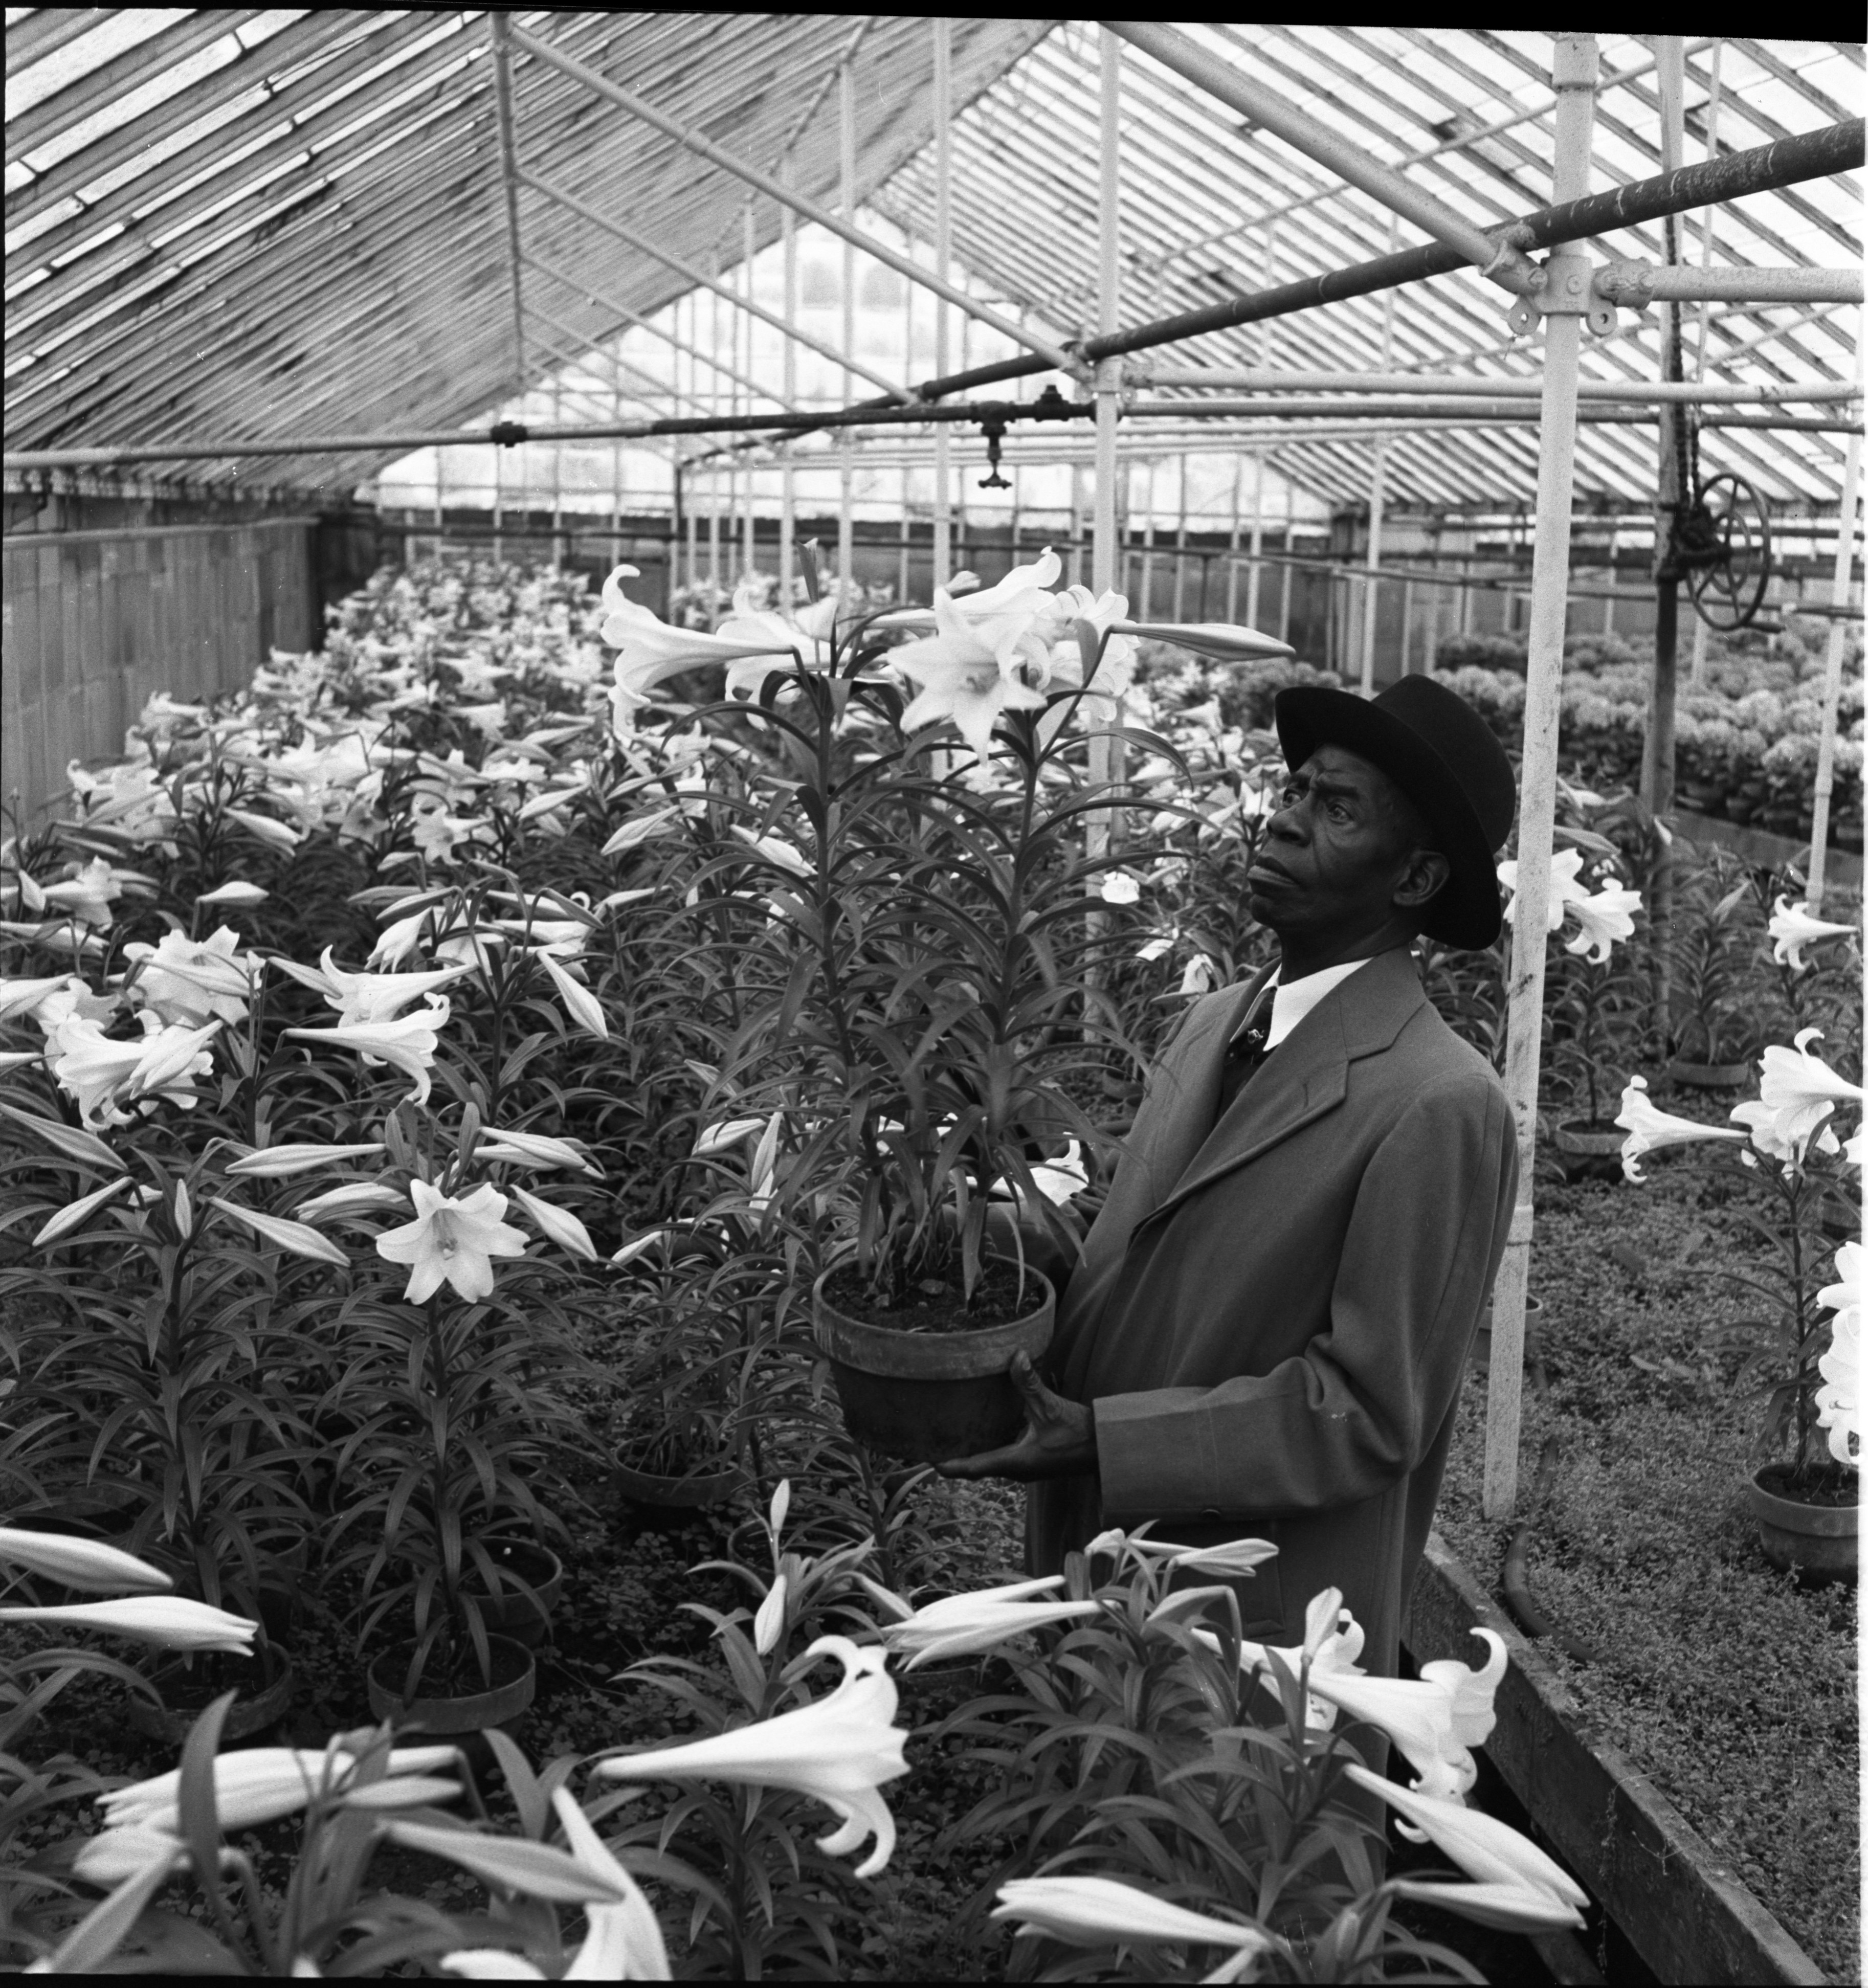 Image from Rev. C. W. Carpenter Choosing Easter Lilies, April 1954